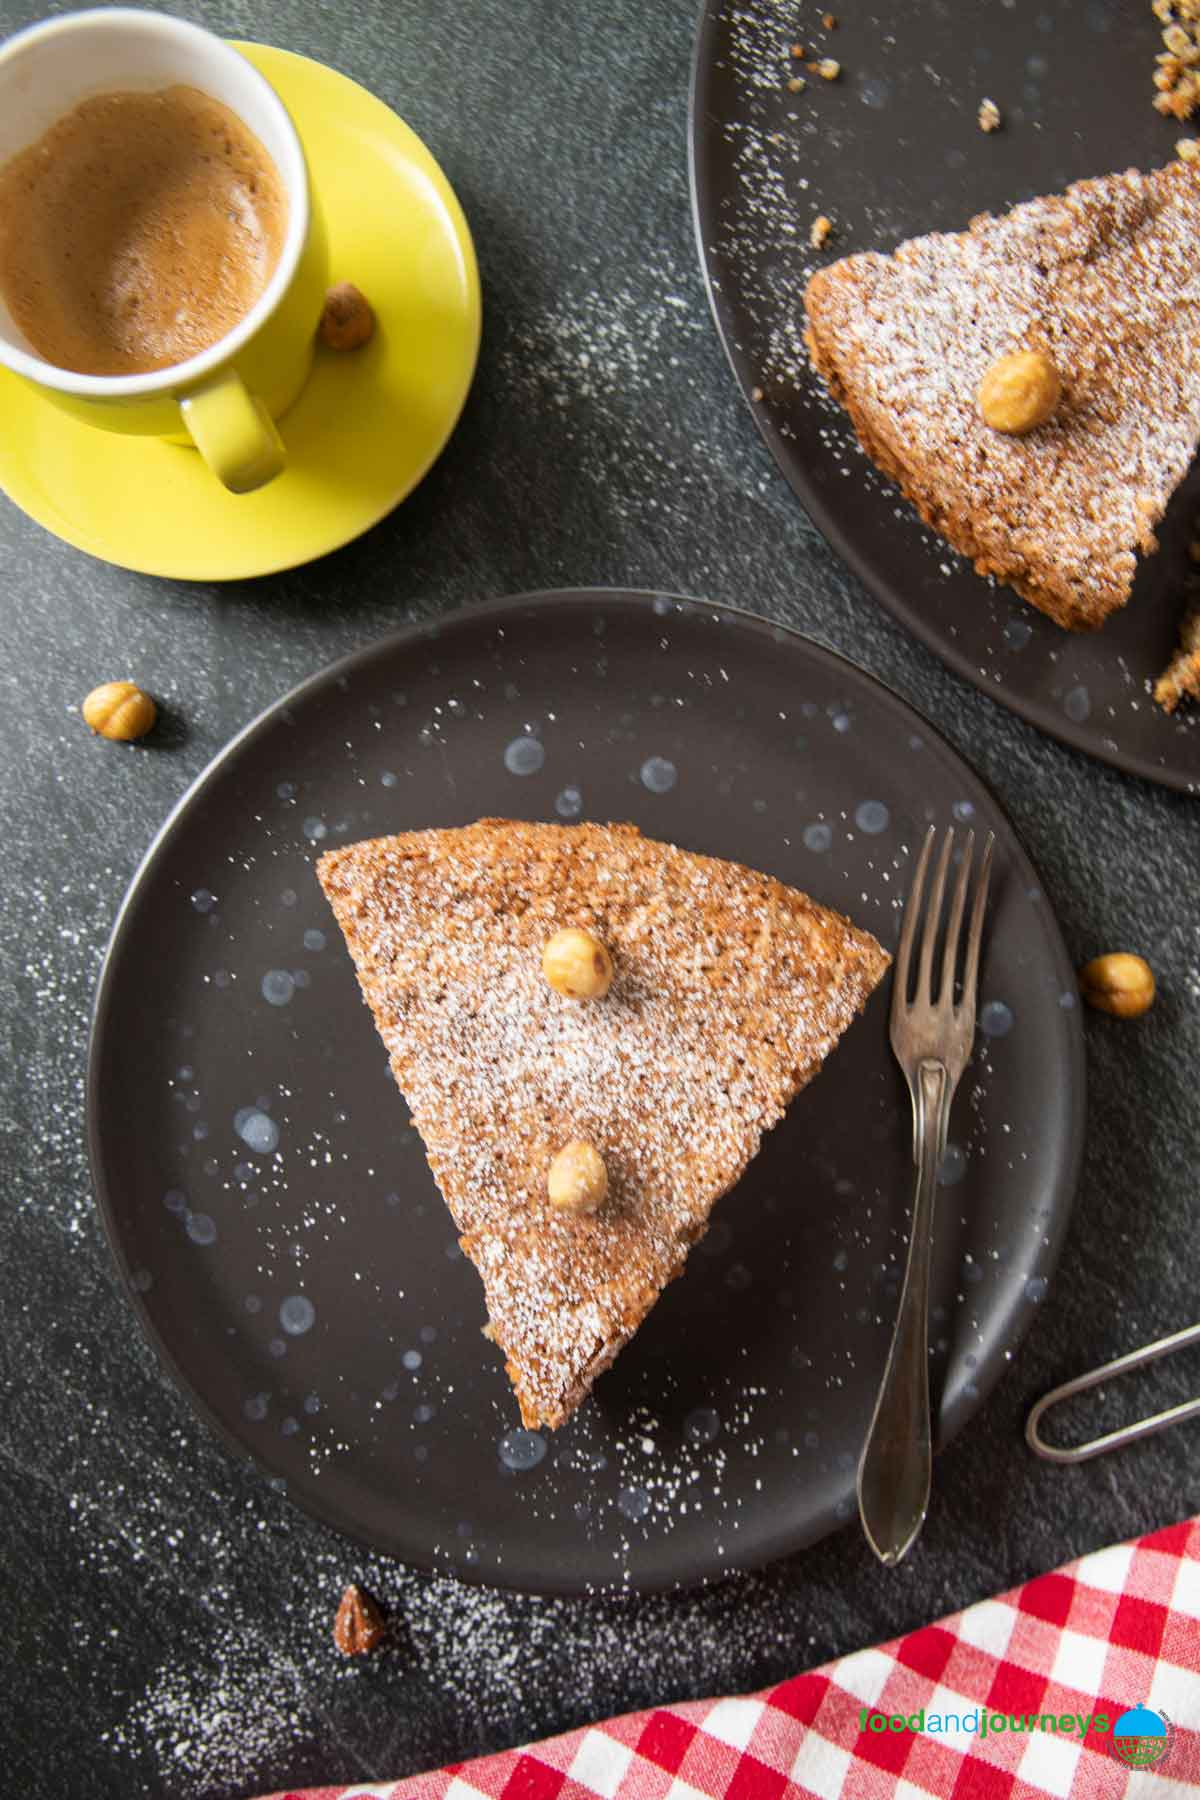 An overhead shot of a serving of hazelnut cake, with a cup of espresso on the side.